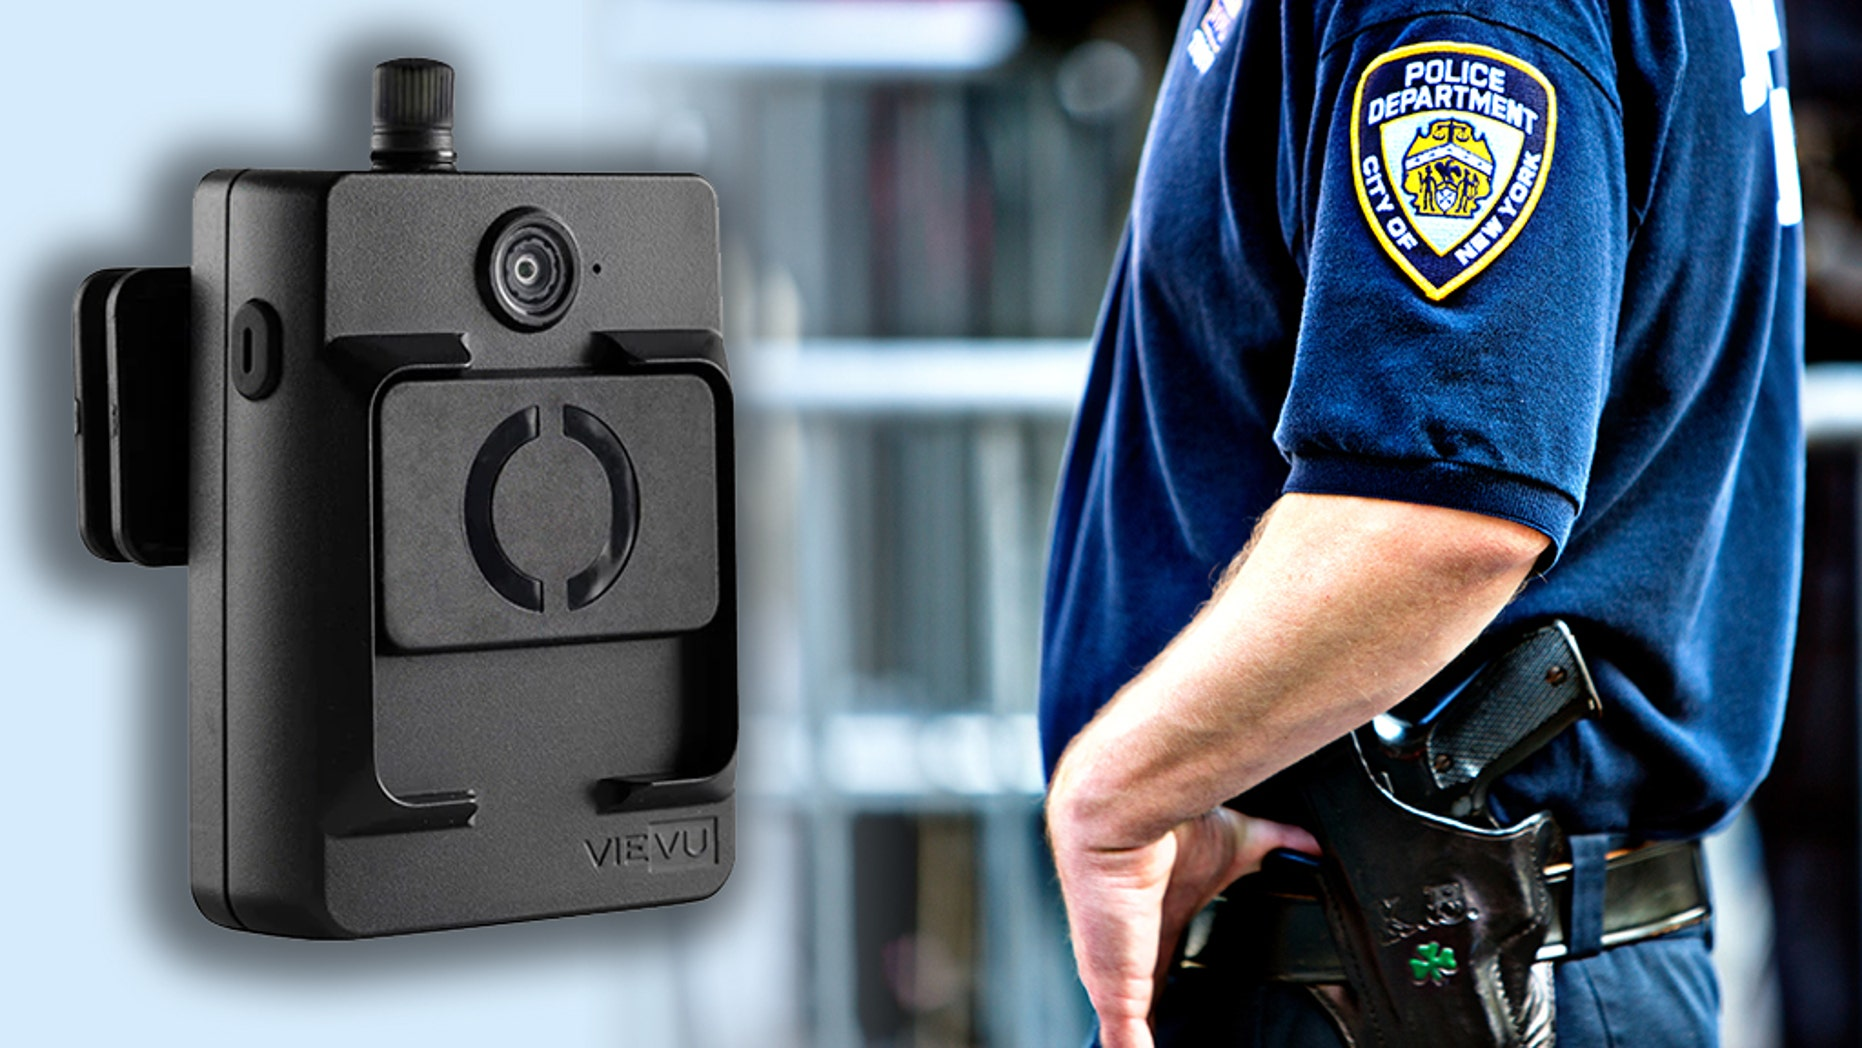 Almost  3000 NYPD Body Cameras Pulled After One Explodes in NYC Precinct